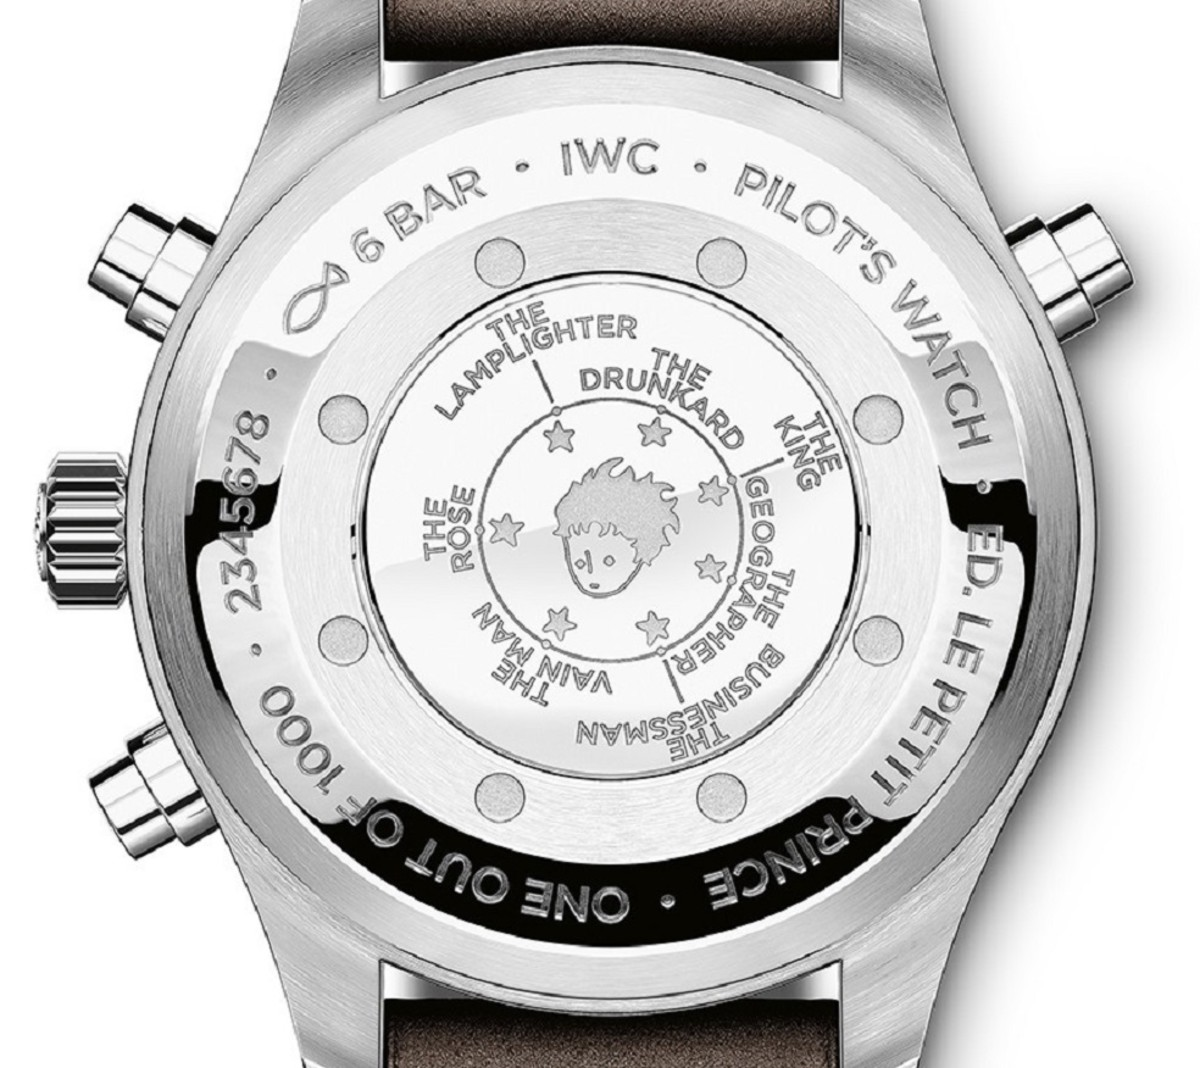 iwc-pilots-watch-double-chronograph-edition-le-petit-prince-5